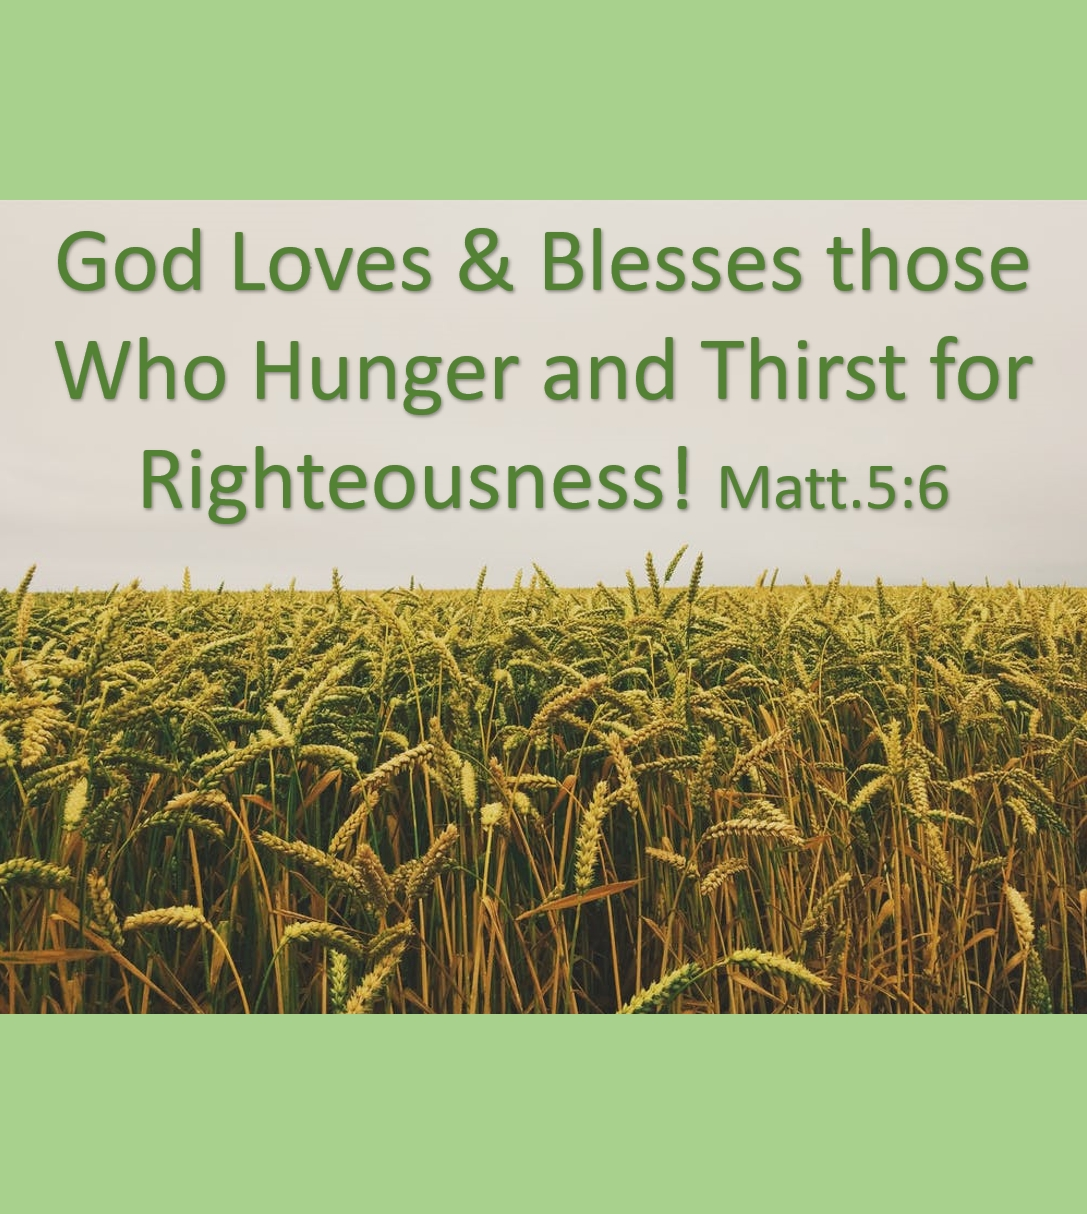 God Loves and Blesses Those Who Thirst and Hunger for Righteousness